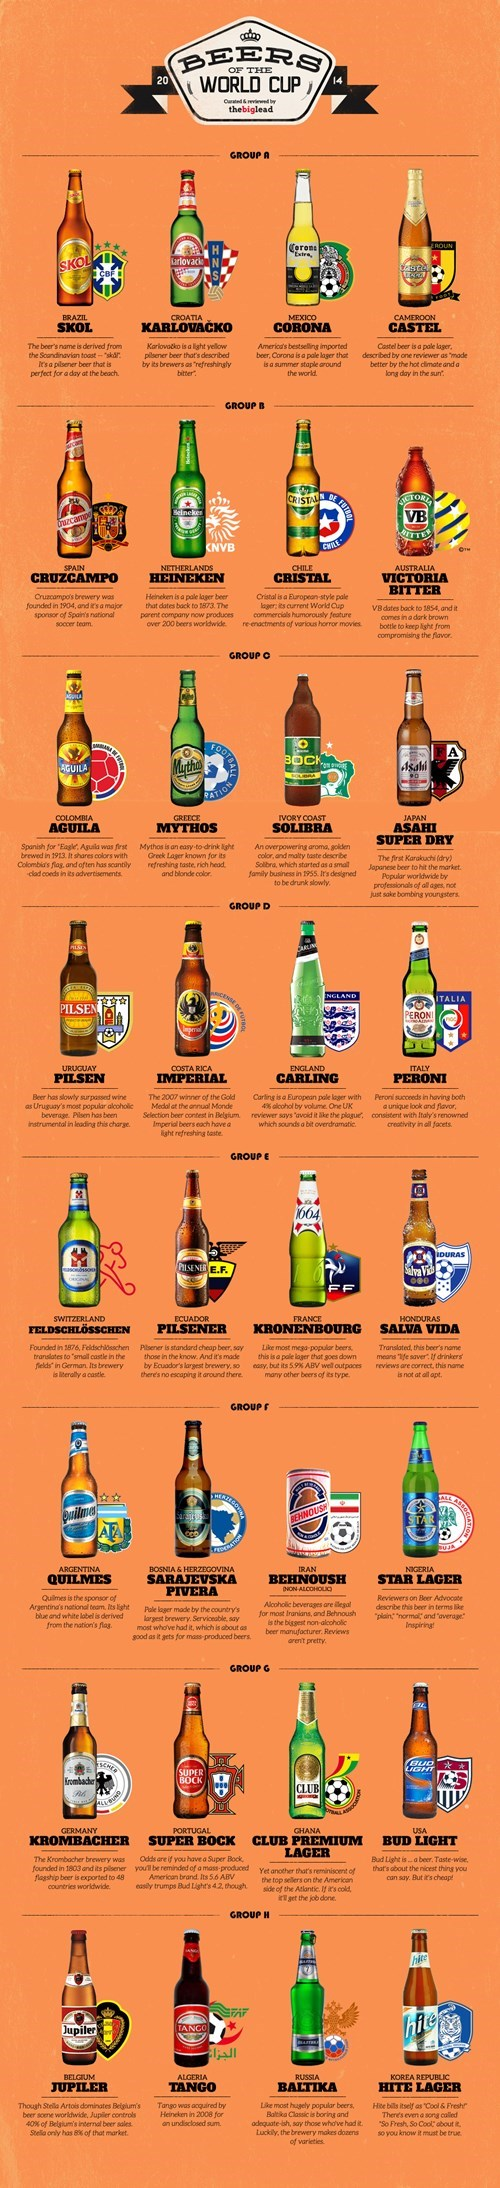 beer,awesome,funny,world cup